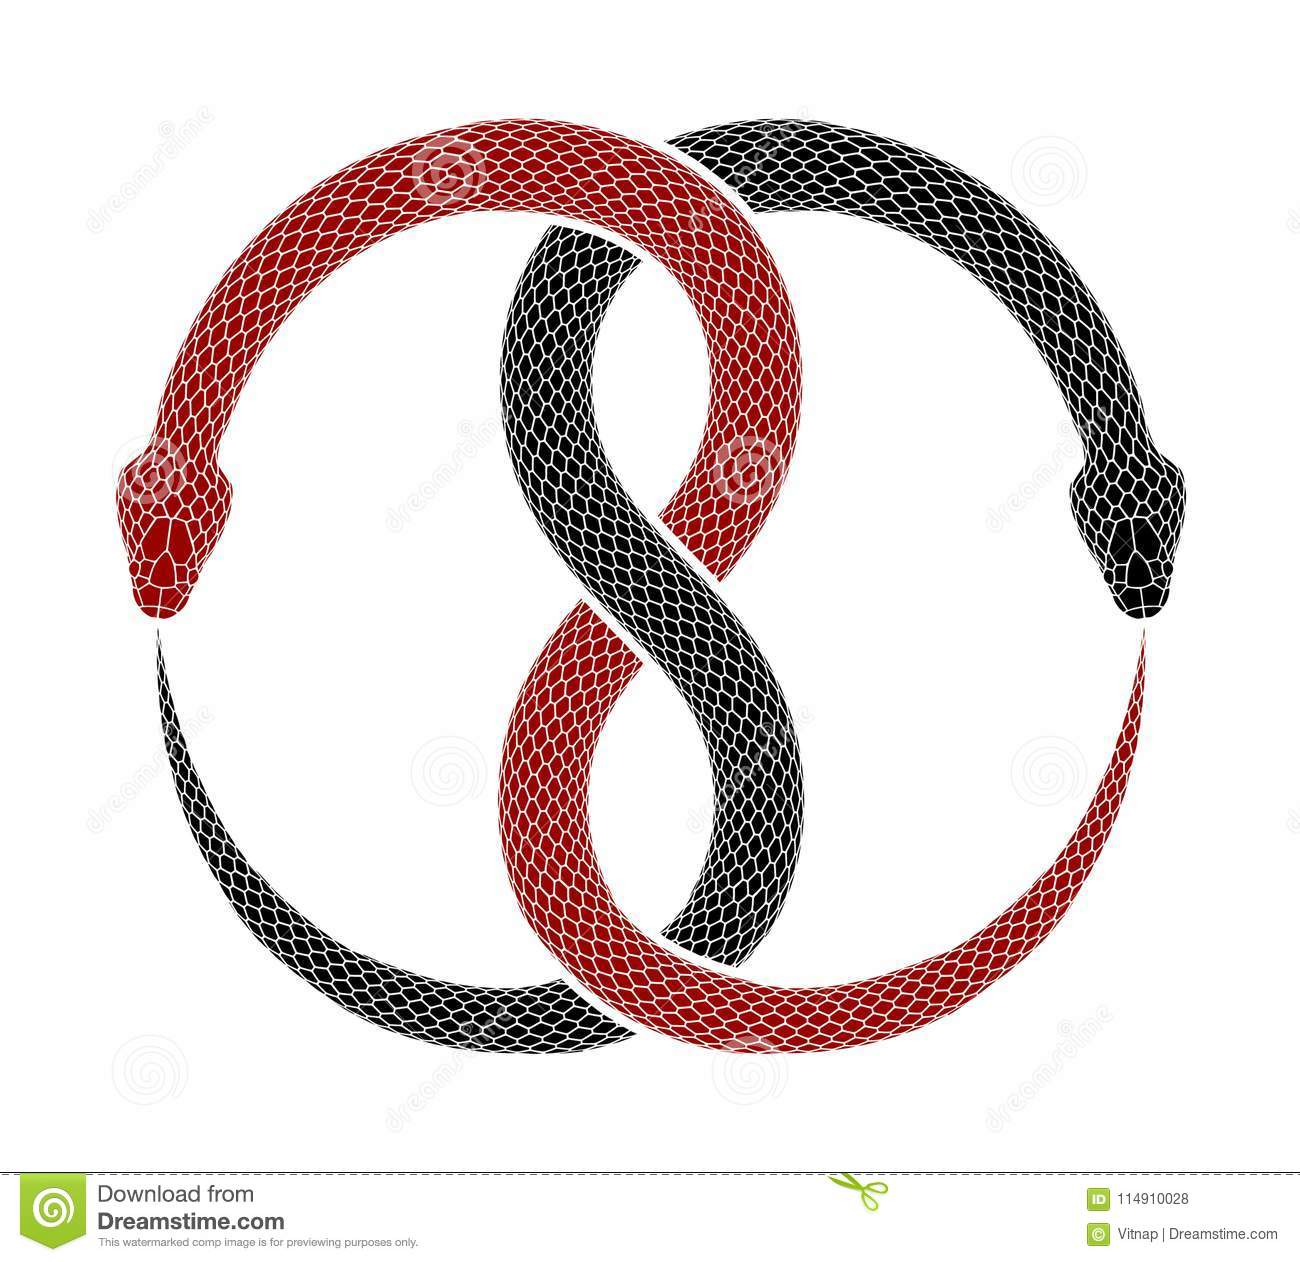 Ouroboros Symbol Tattoo Design Vector Illustration Of Two Intertwined Snakes Eat Their Tails Red And Black Serpents Isolated On A White Background